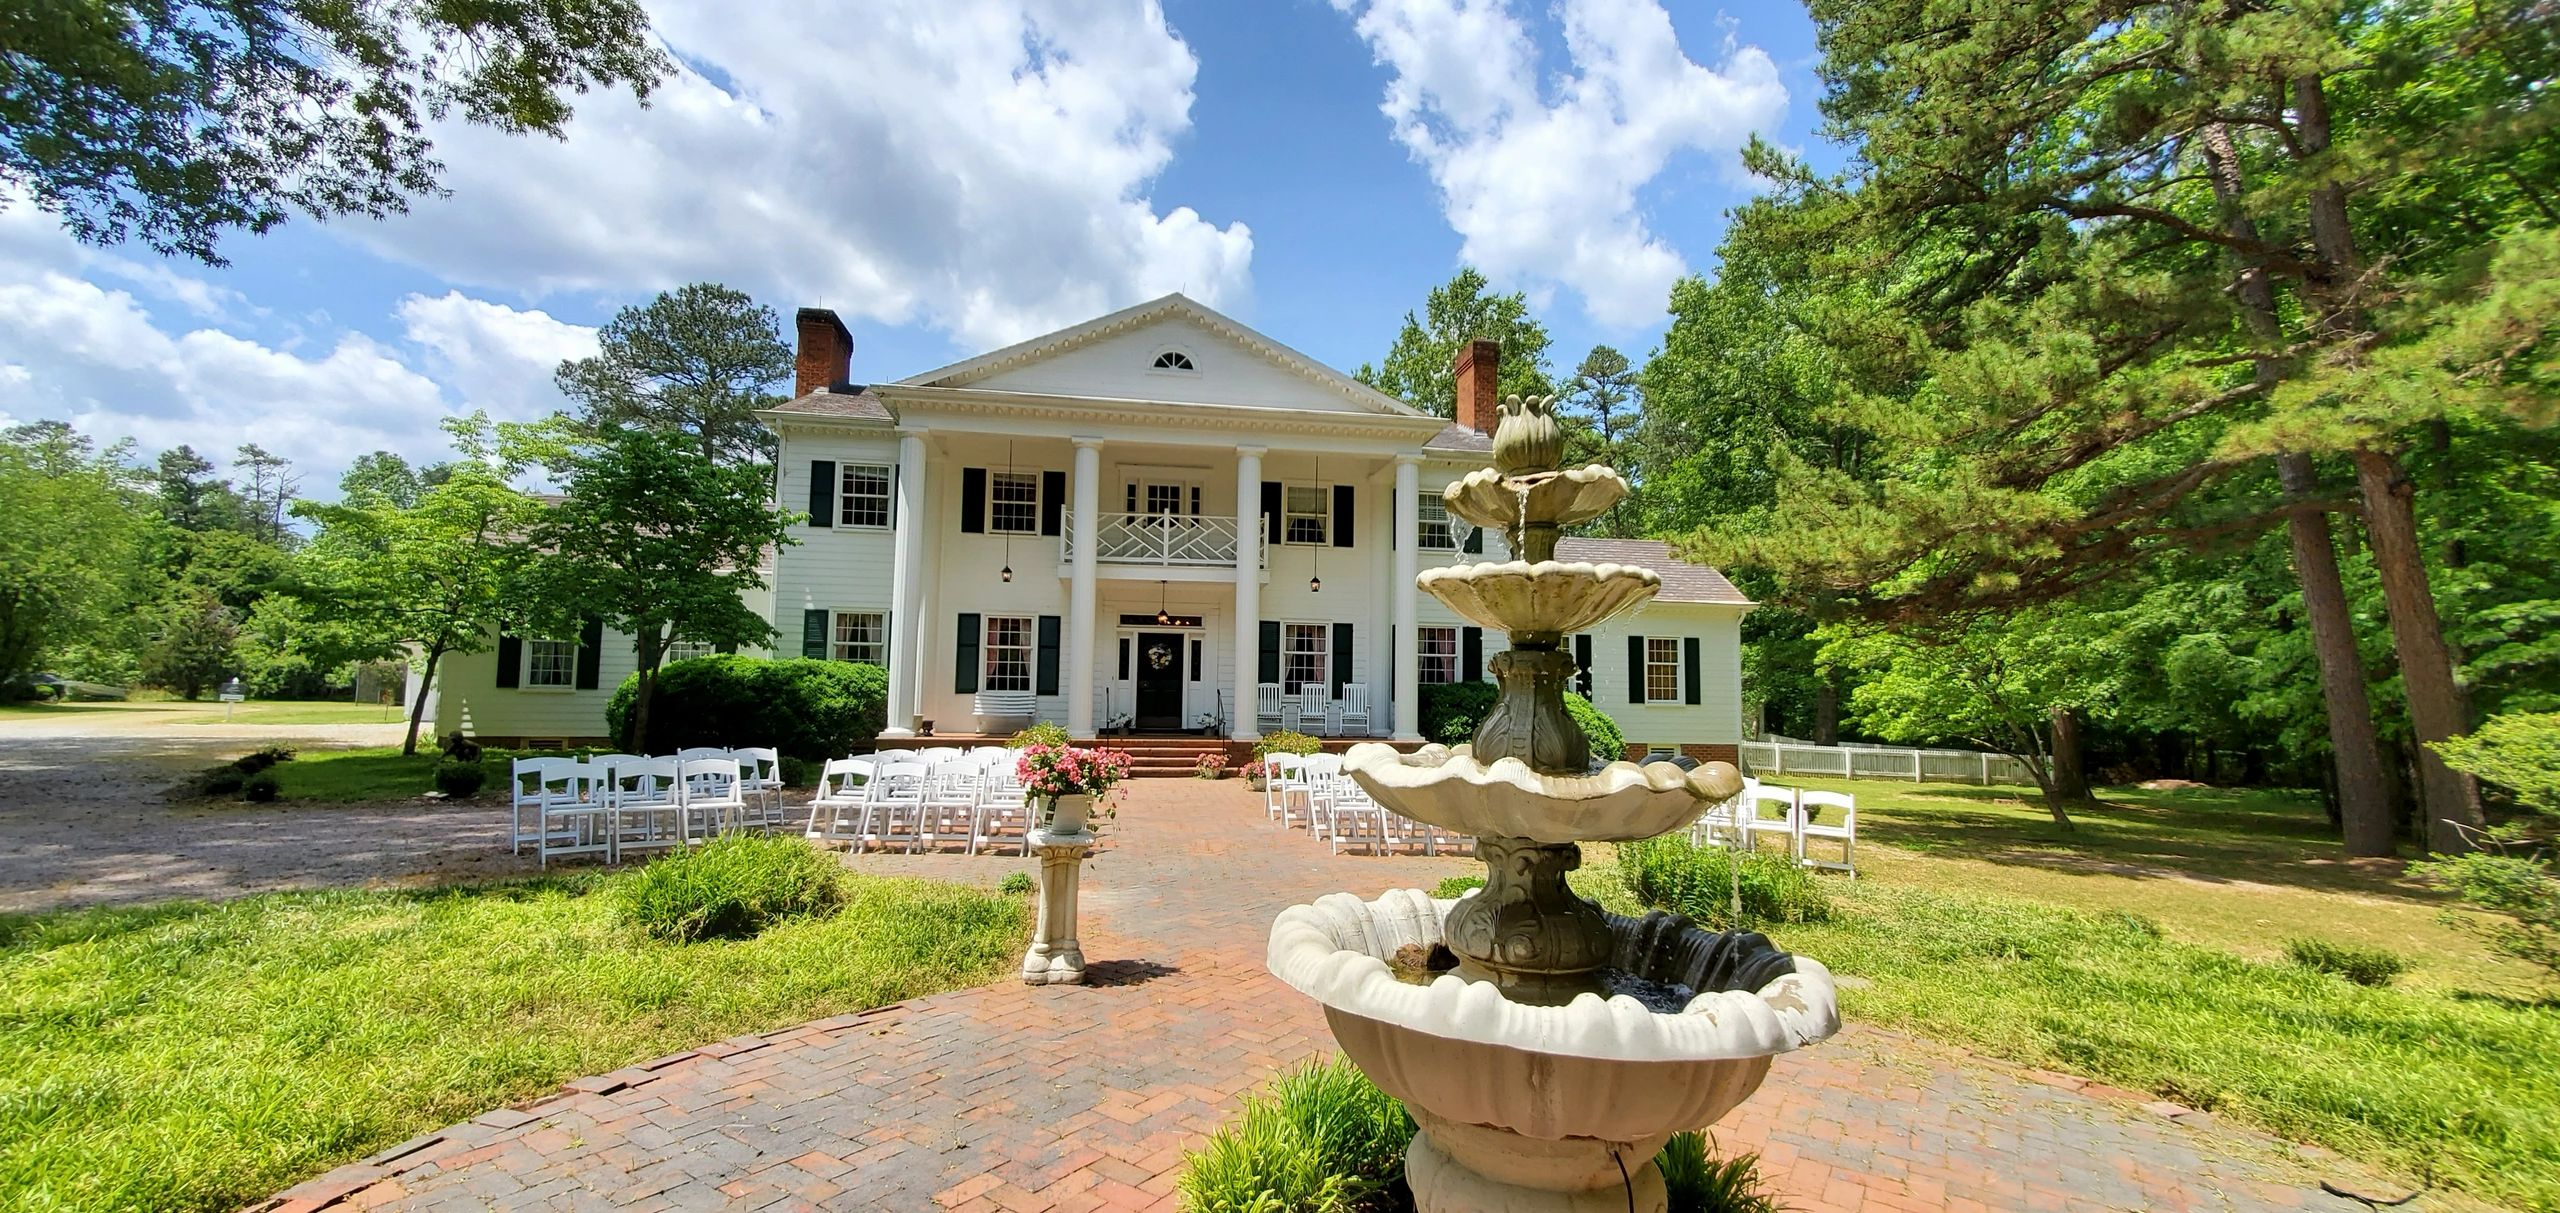 The Apple Blossom Inn, Wedding Venue Richmond Virginia, Richmond Weddings, Elopement services